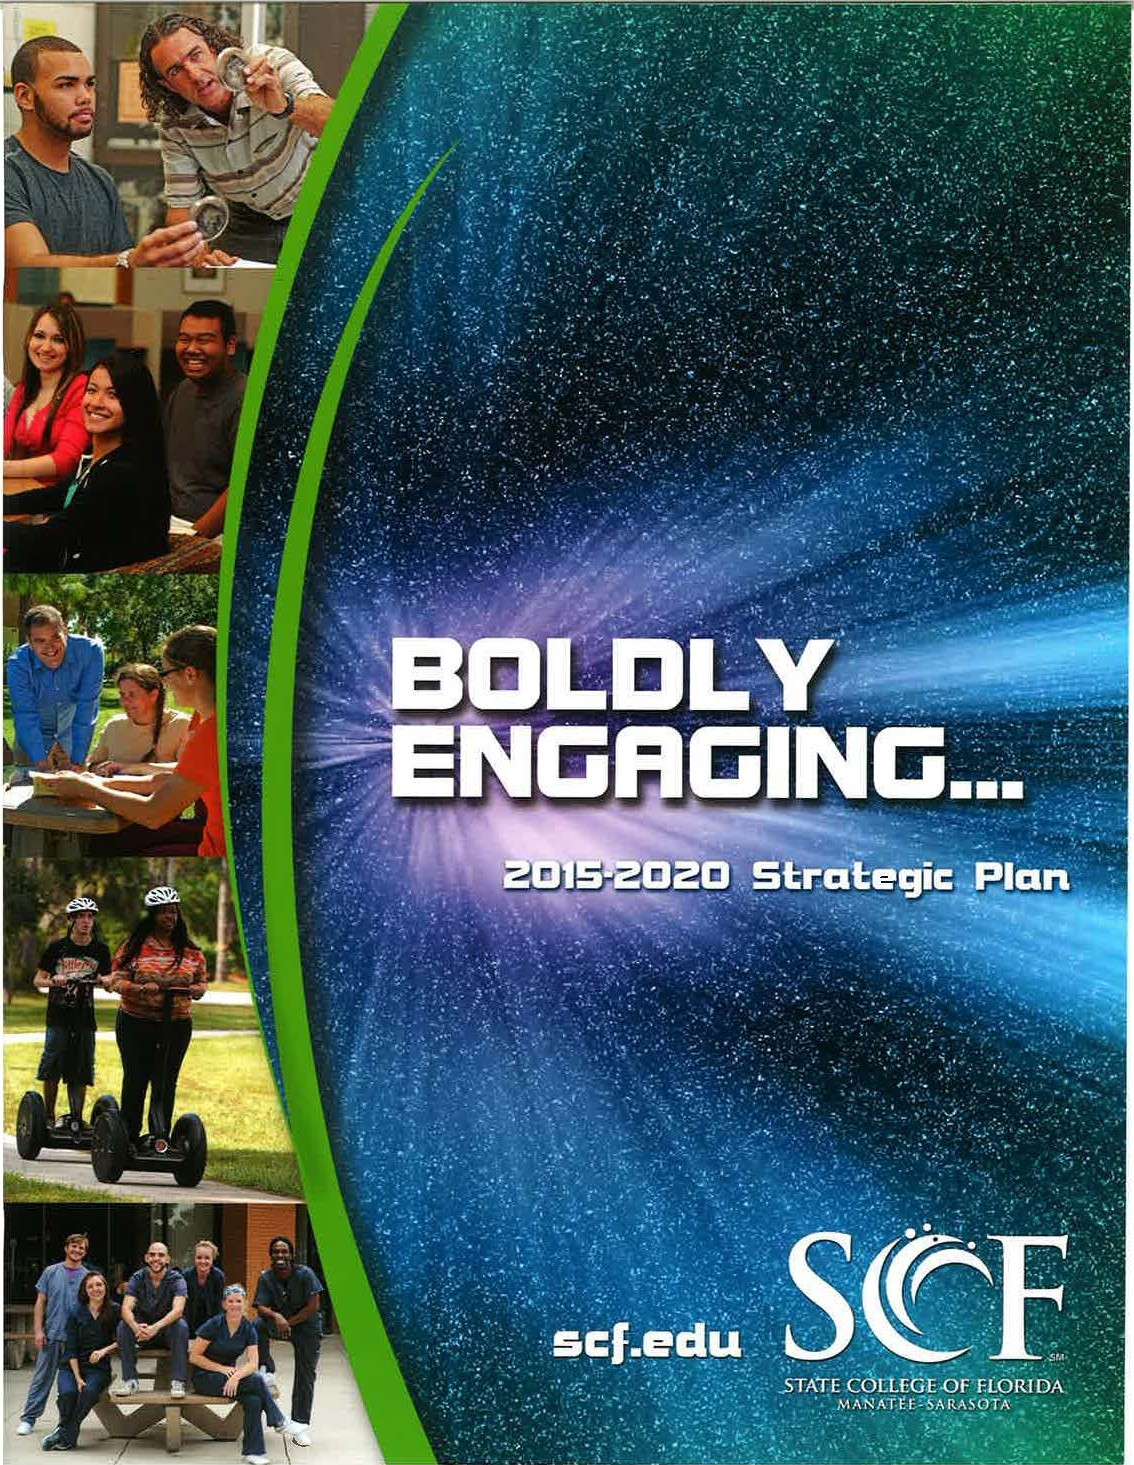 SCF's Communications & Marketing Department won a First Place Award of Excellence from the Association of Florida Colleges for the College's Strategic Plan booklet.